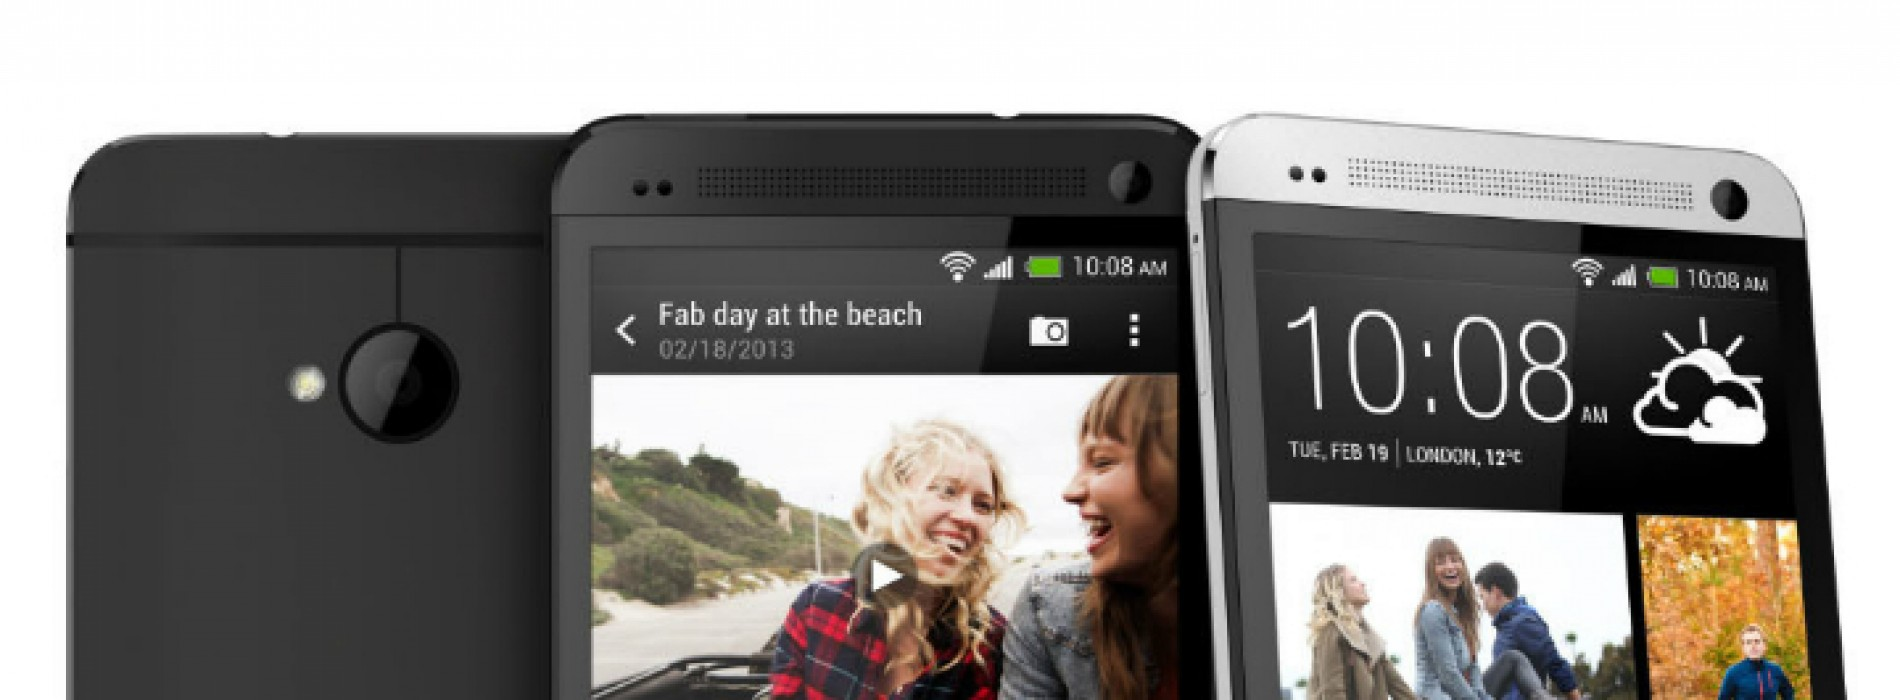 HTC announces flagship device for 2013, the HTC One